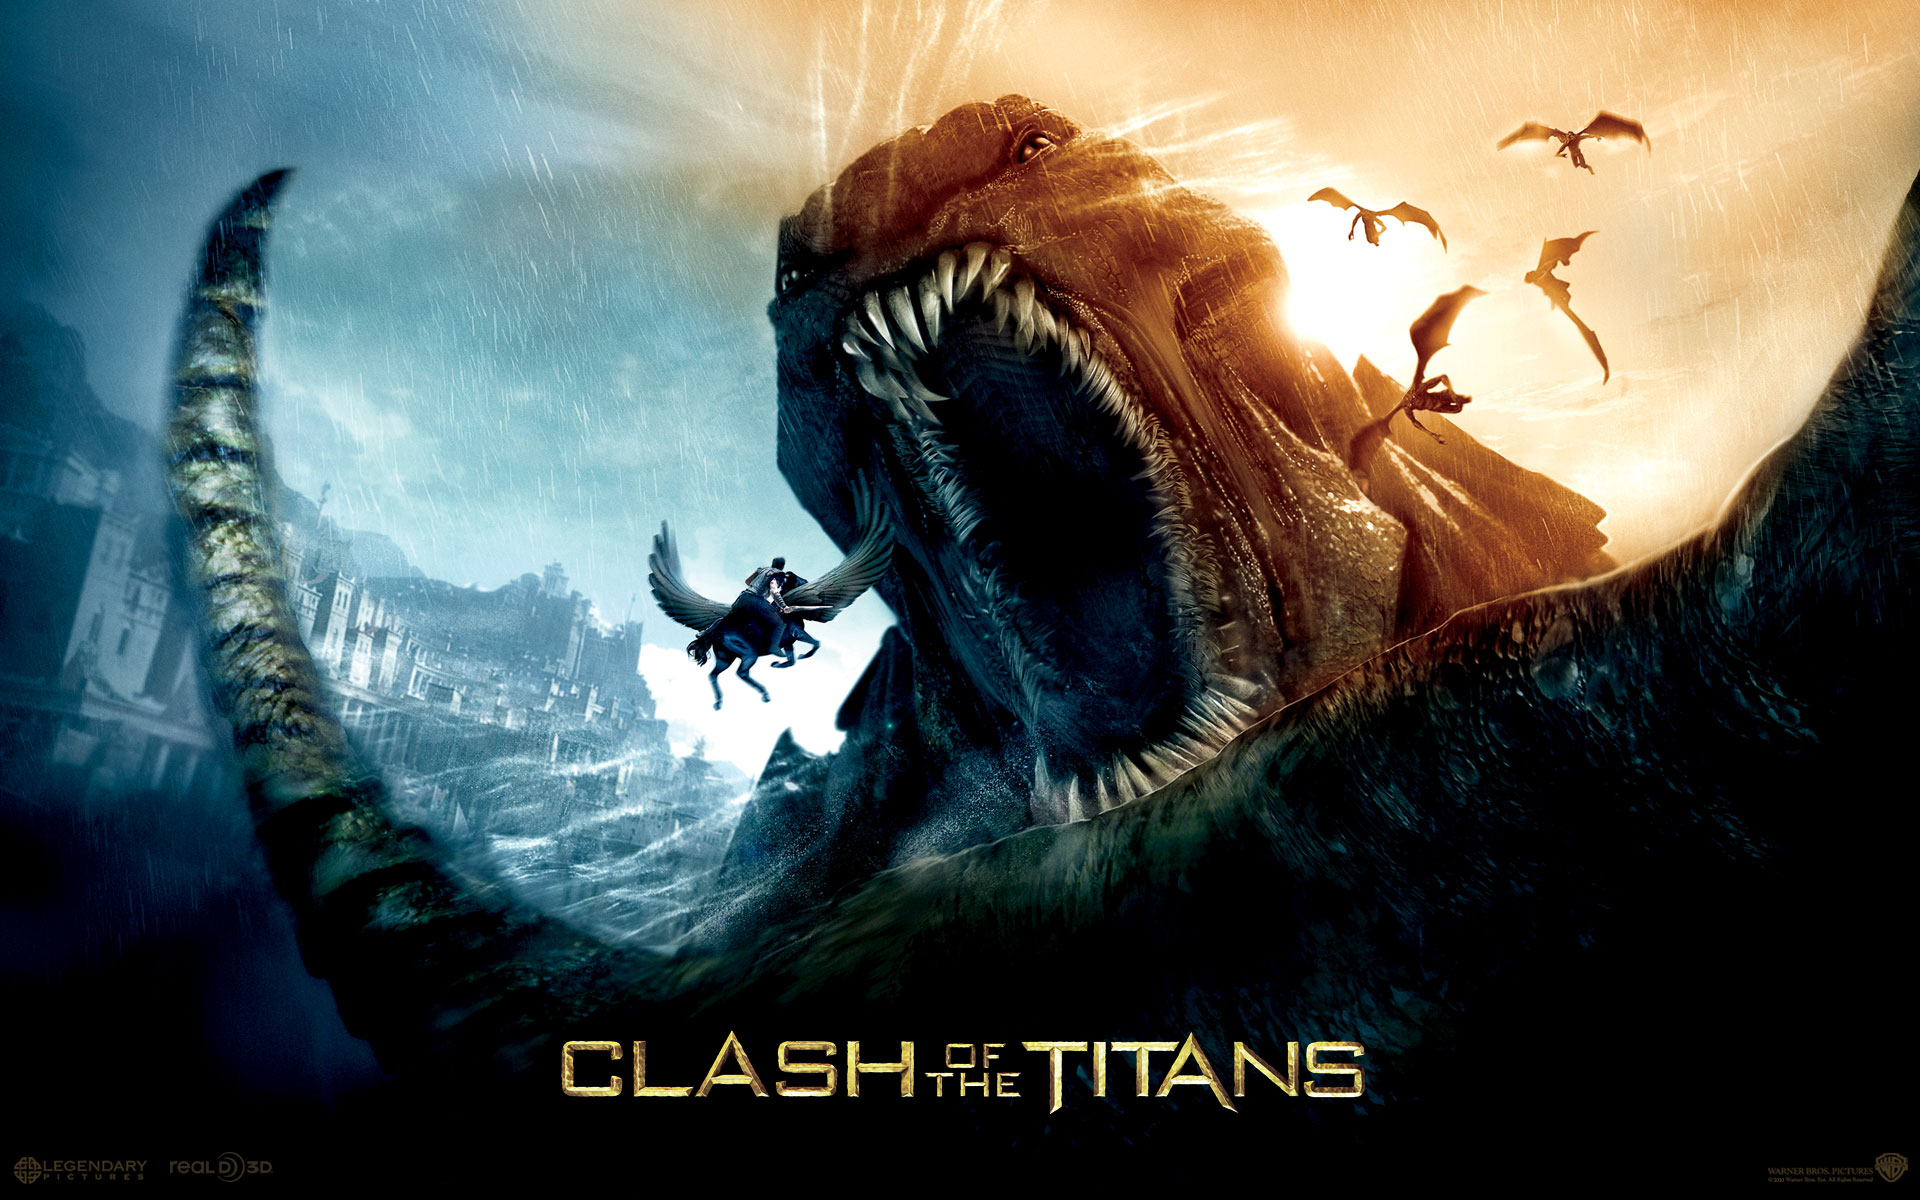 english movie wallpapers. Clash of the titans – movie wallpaper. The mortal son of the god Zeus